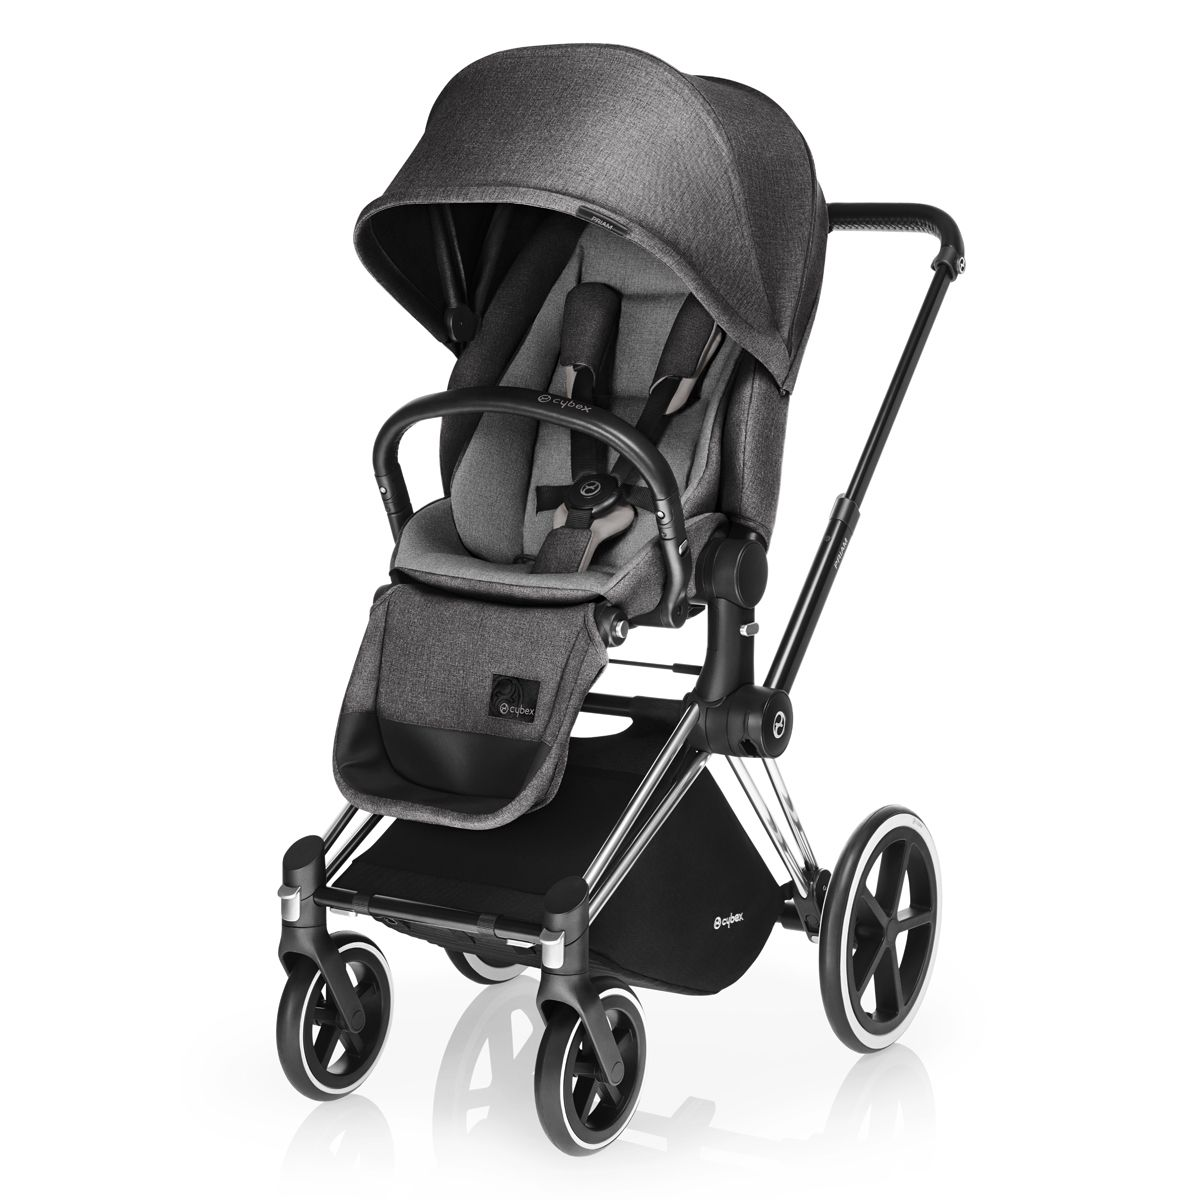 Cybex Priam All Terrain Lux Seat Stroller Cybex priam